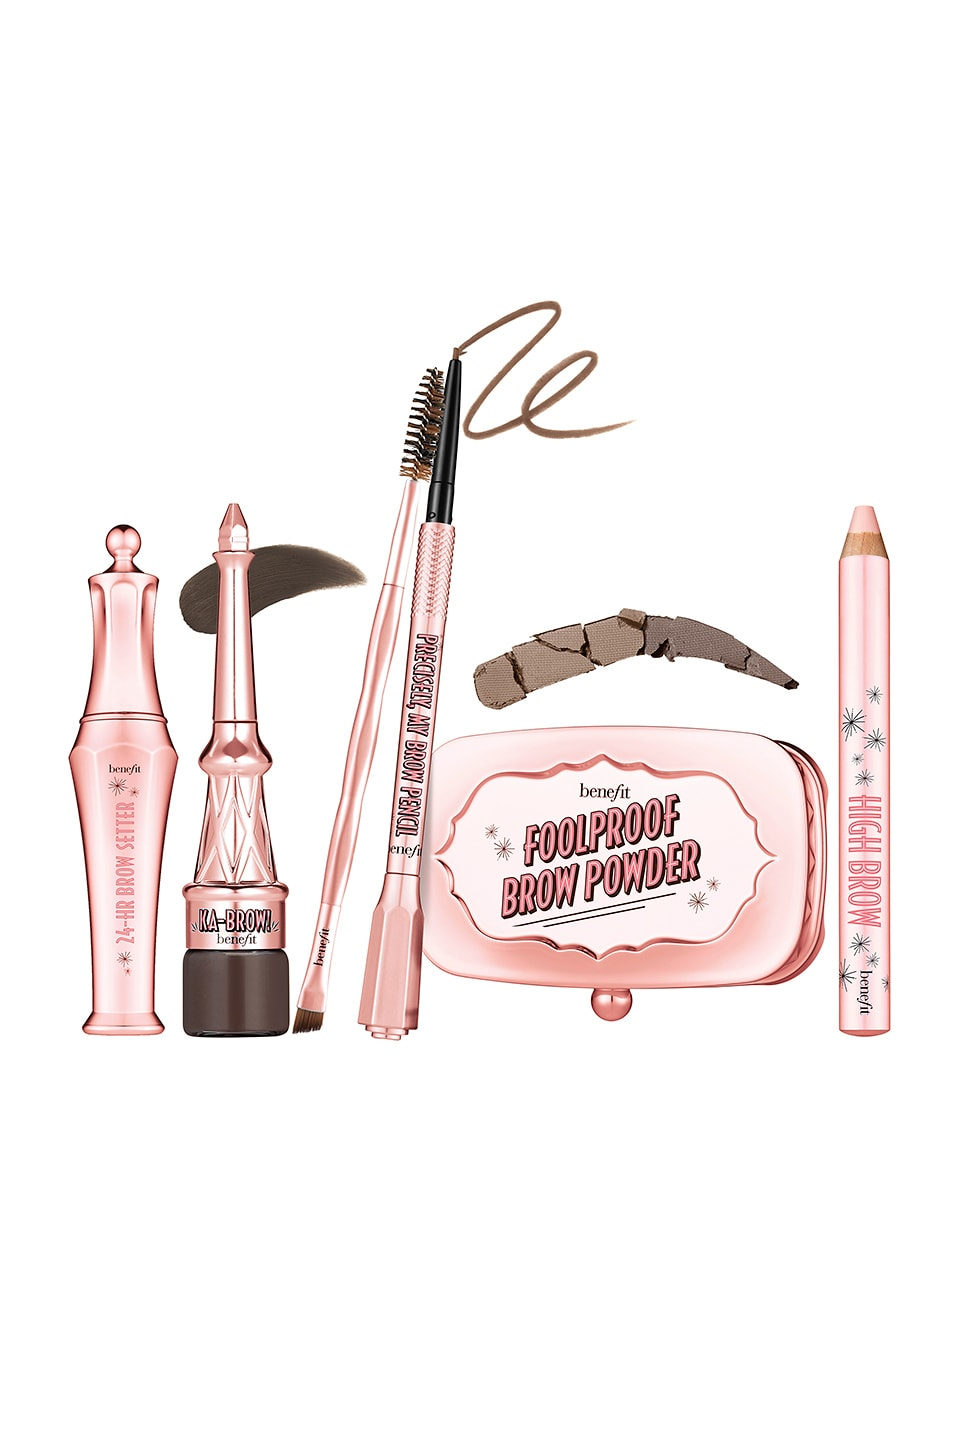 Benefit Cosmetics Bomb Ass Brows! by Desi Perkins in Medium-Neutral